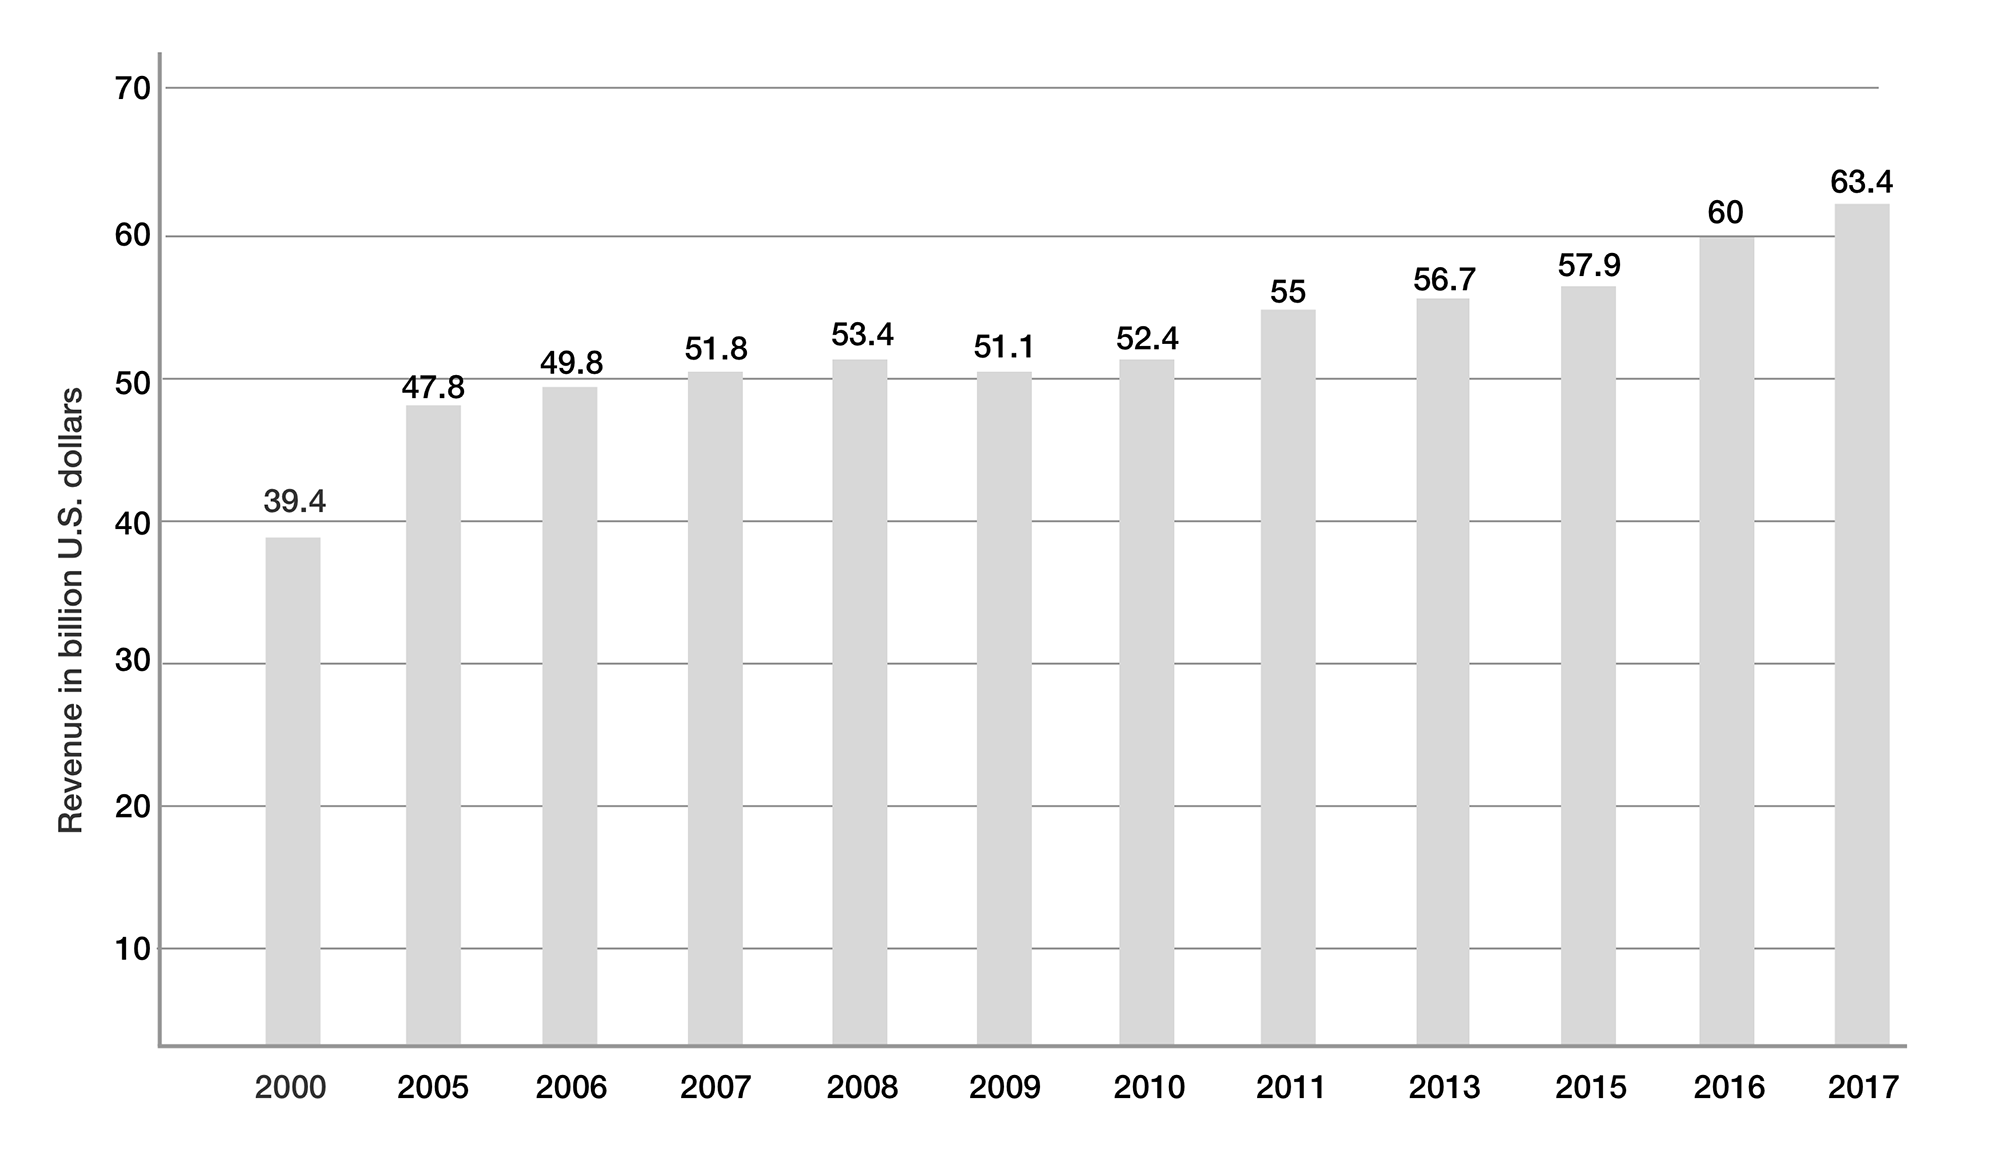 United States waste industry revenue 2000 to 2017